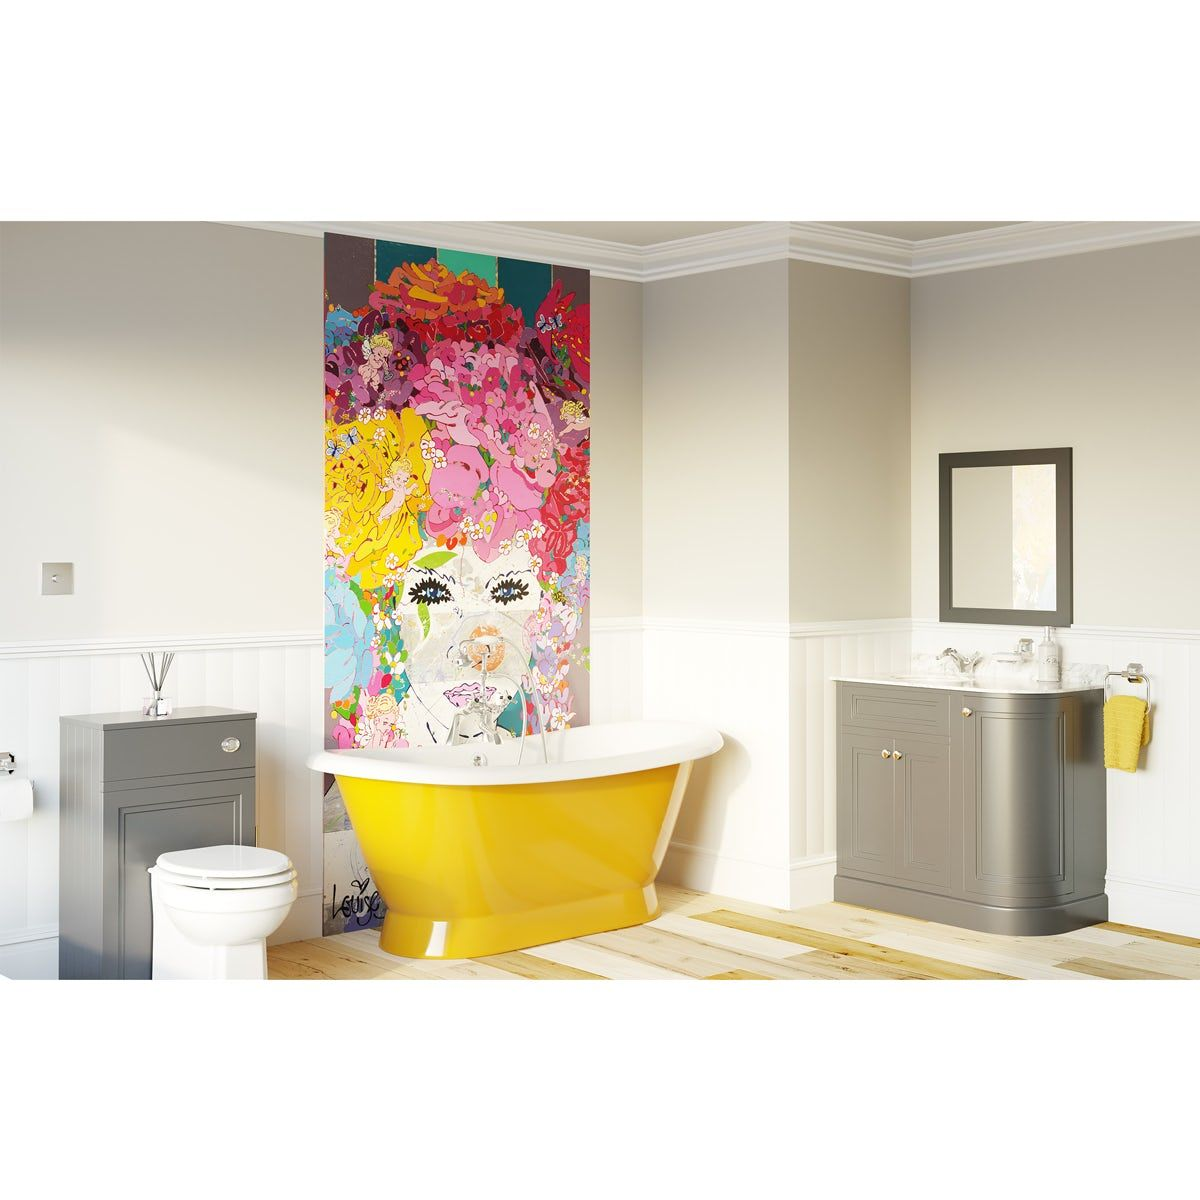 Louise Dear The Serenade Yellow bathroom suite with ...